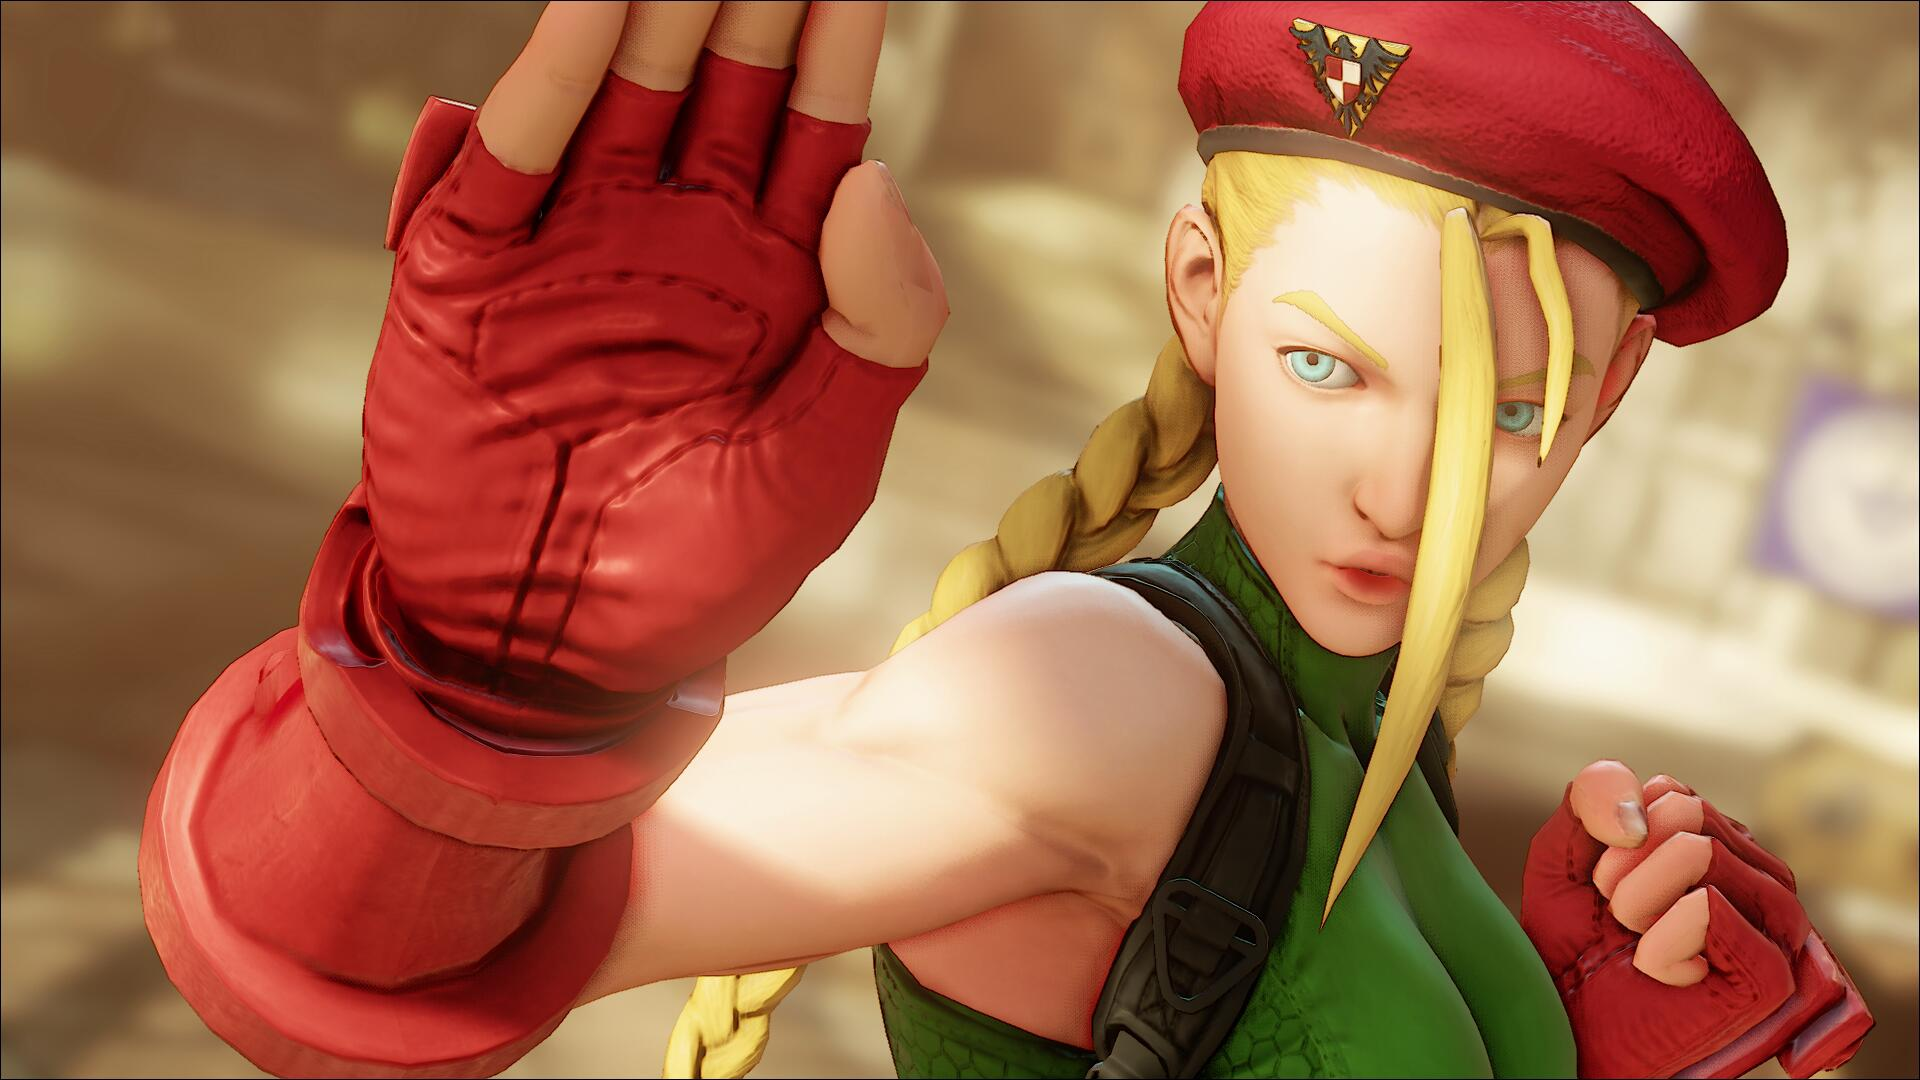 Street Fighter Producer Says He Doesn't Have Street Fighter 6